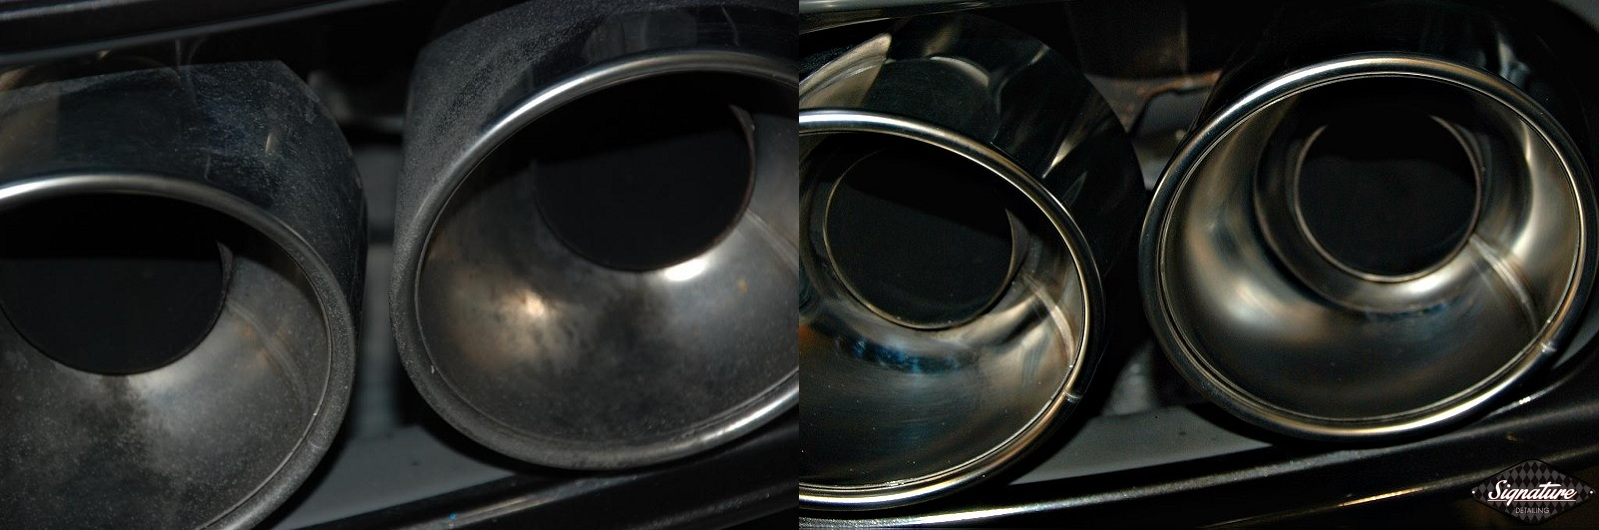 New Car Prep -Signature Detailing-Greg Gellas-exhaust tips polished BEFORE & AFTER